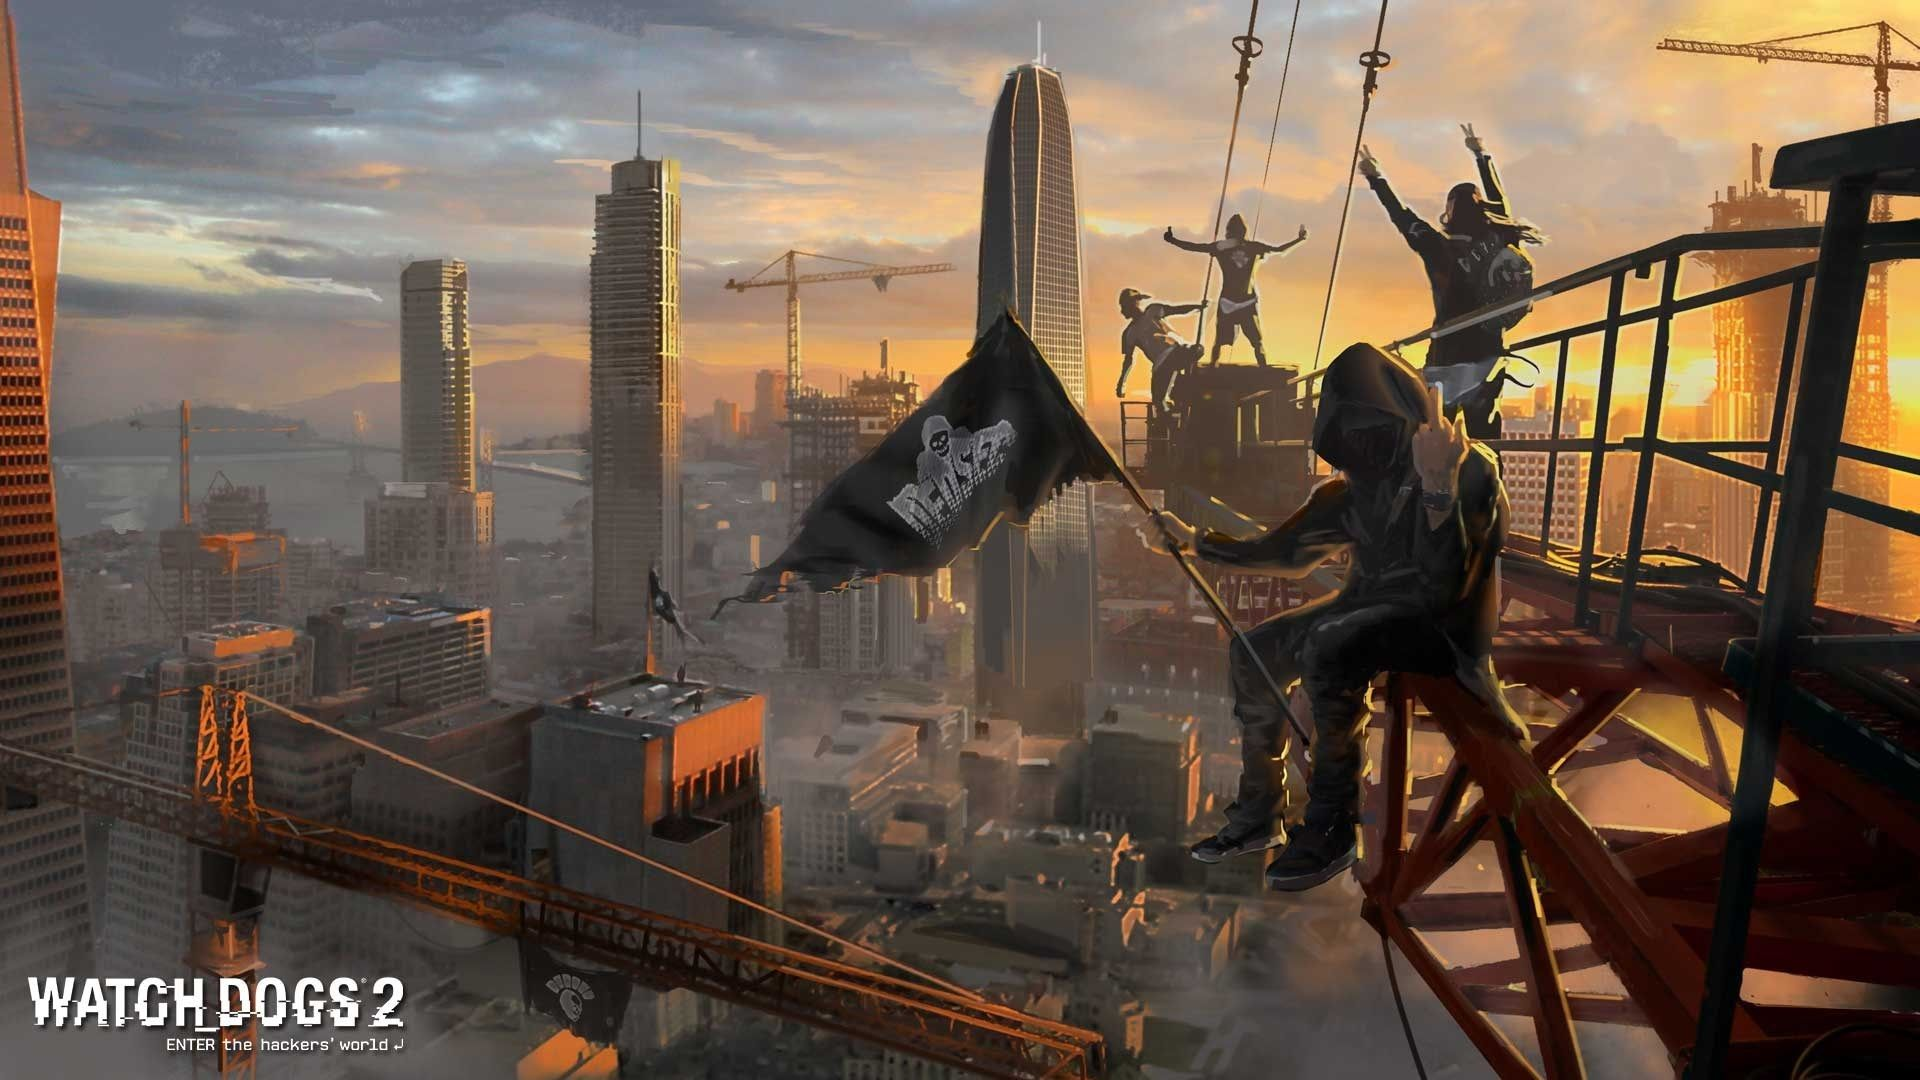 1920x1080 Watch Dogs 2 High Quality Images Watch Dogs Pictures Picture Watch